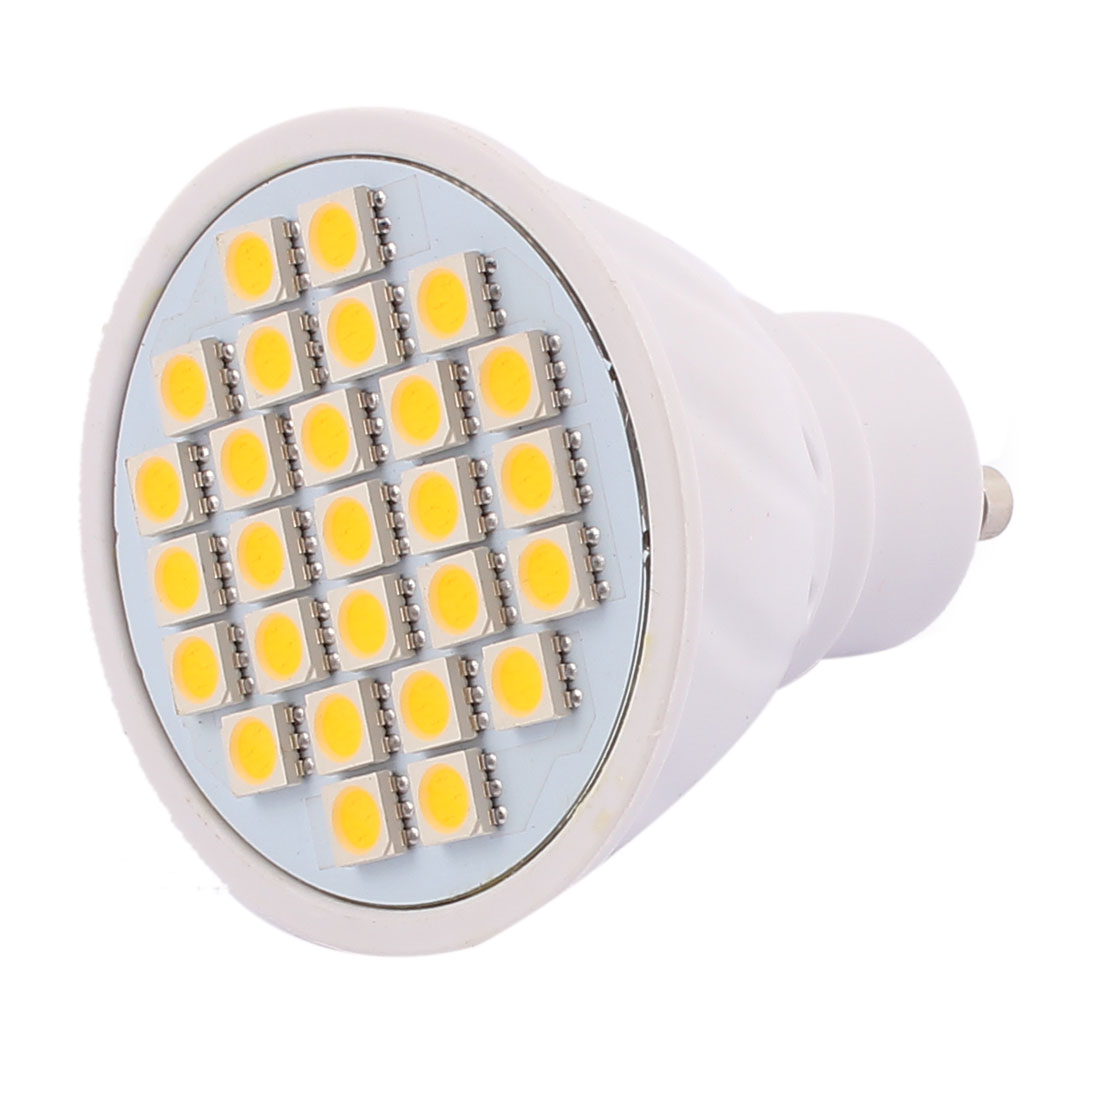 220V-240V GU10 LED Light 4W 5050 SMD 27 LEDs Spotlight Down Lamp Bulb Energy Save Warm White